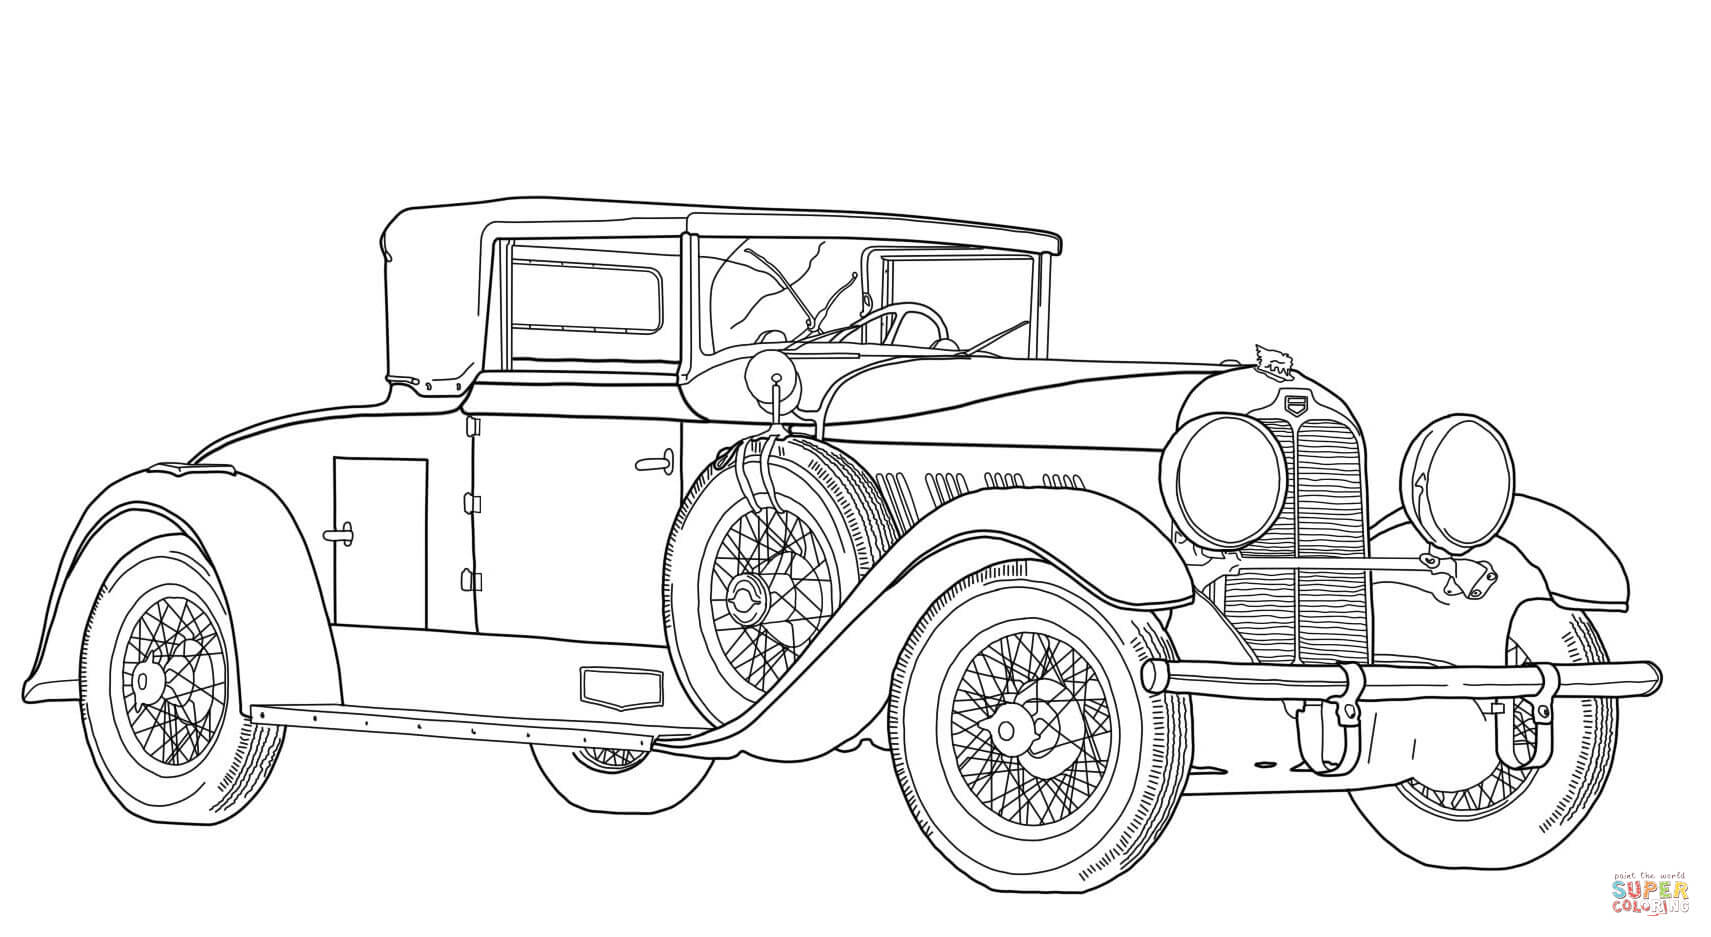 old fashioned car coloring pages old car line drawing sketch coloring page pages coloring old fashioned car